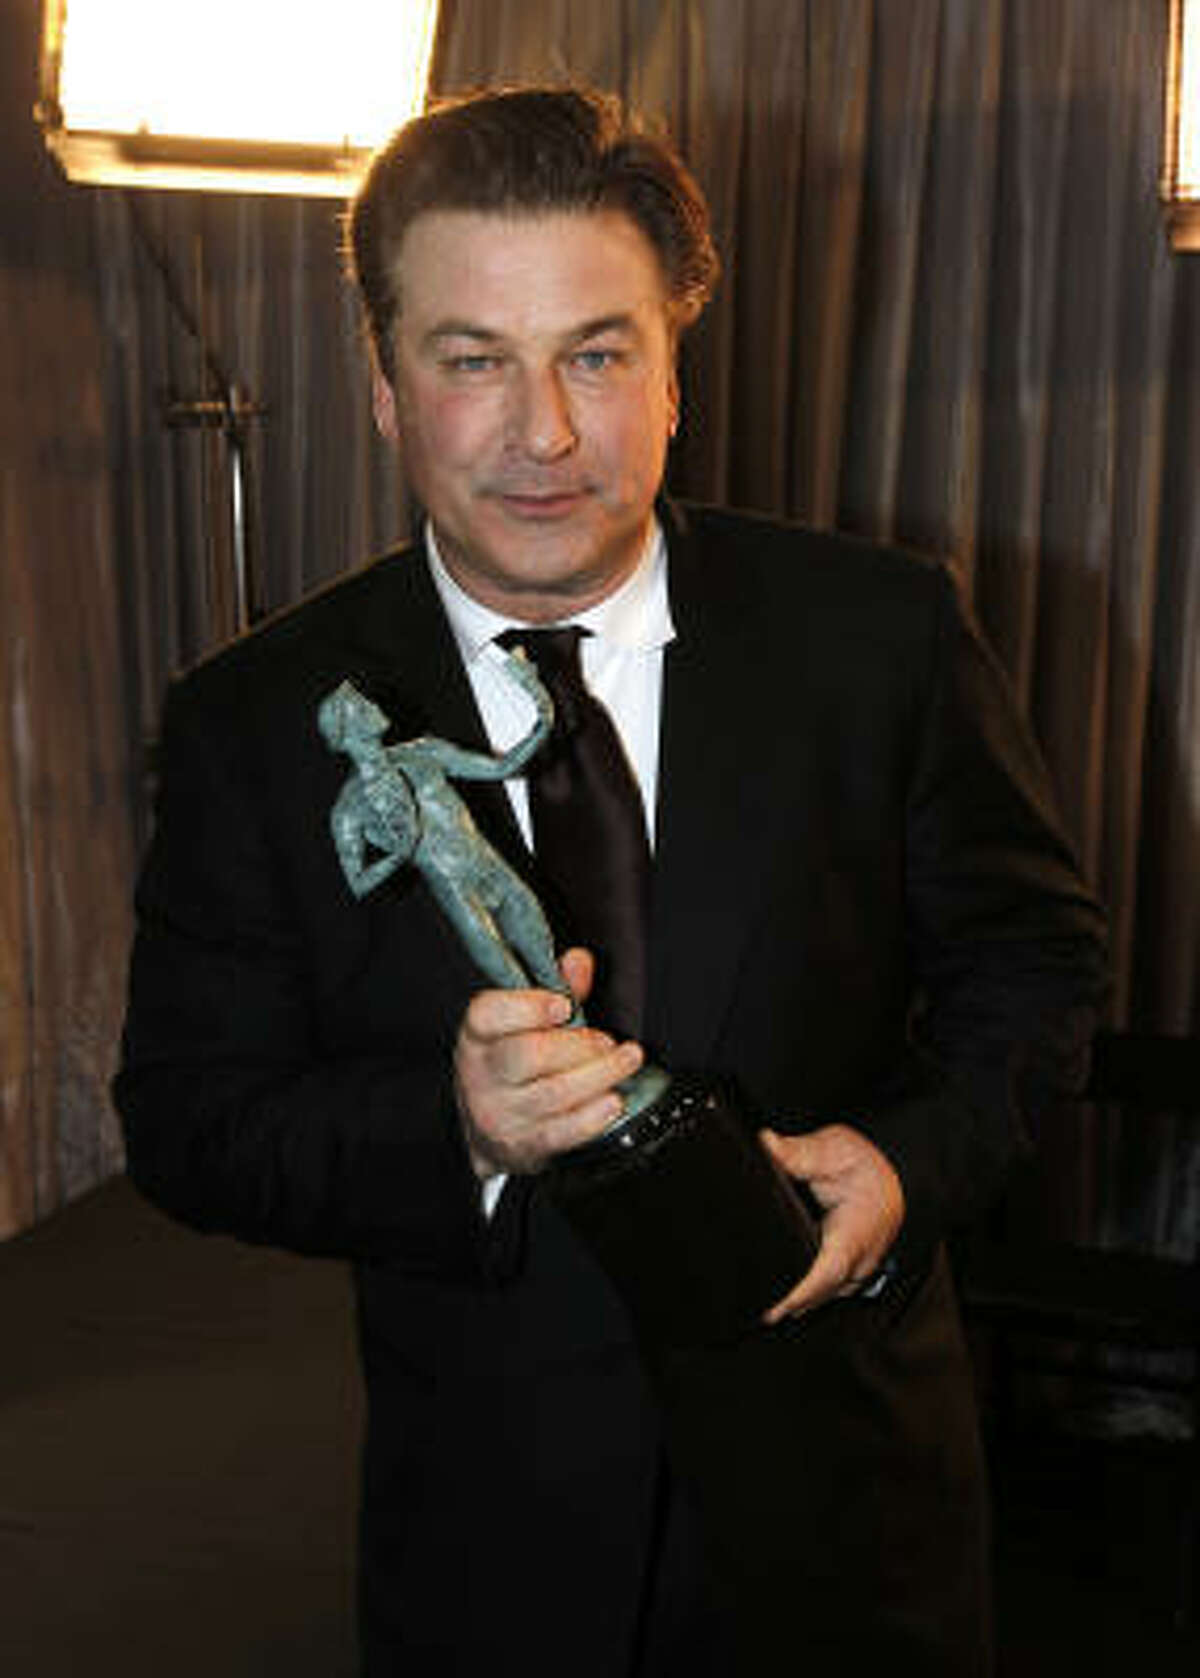 Alec Baldwin should consider upsizing his shirts. A little snug around the neck.